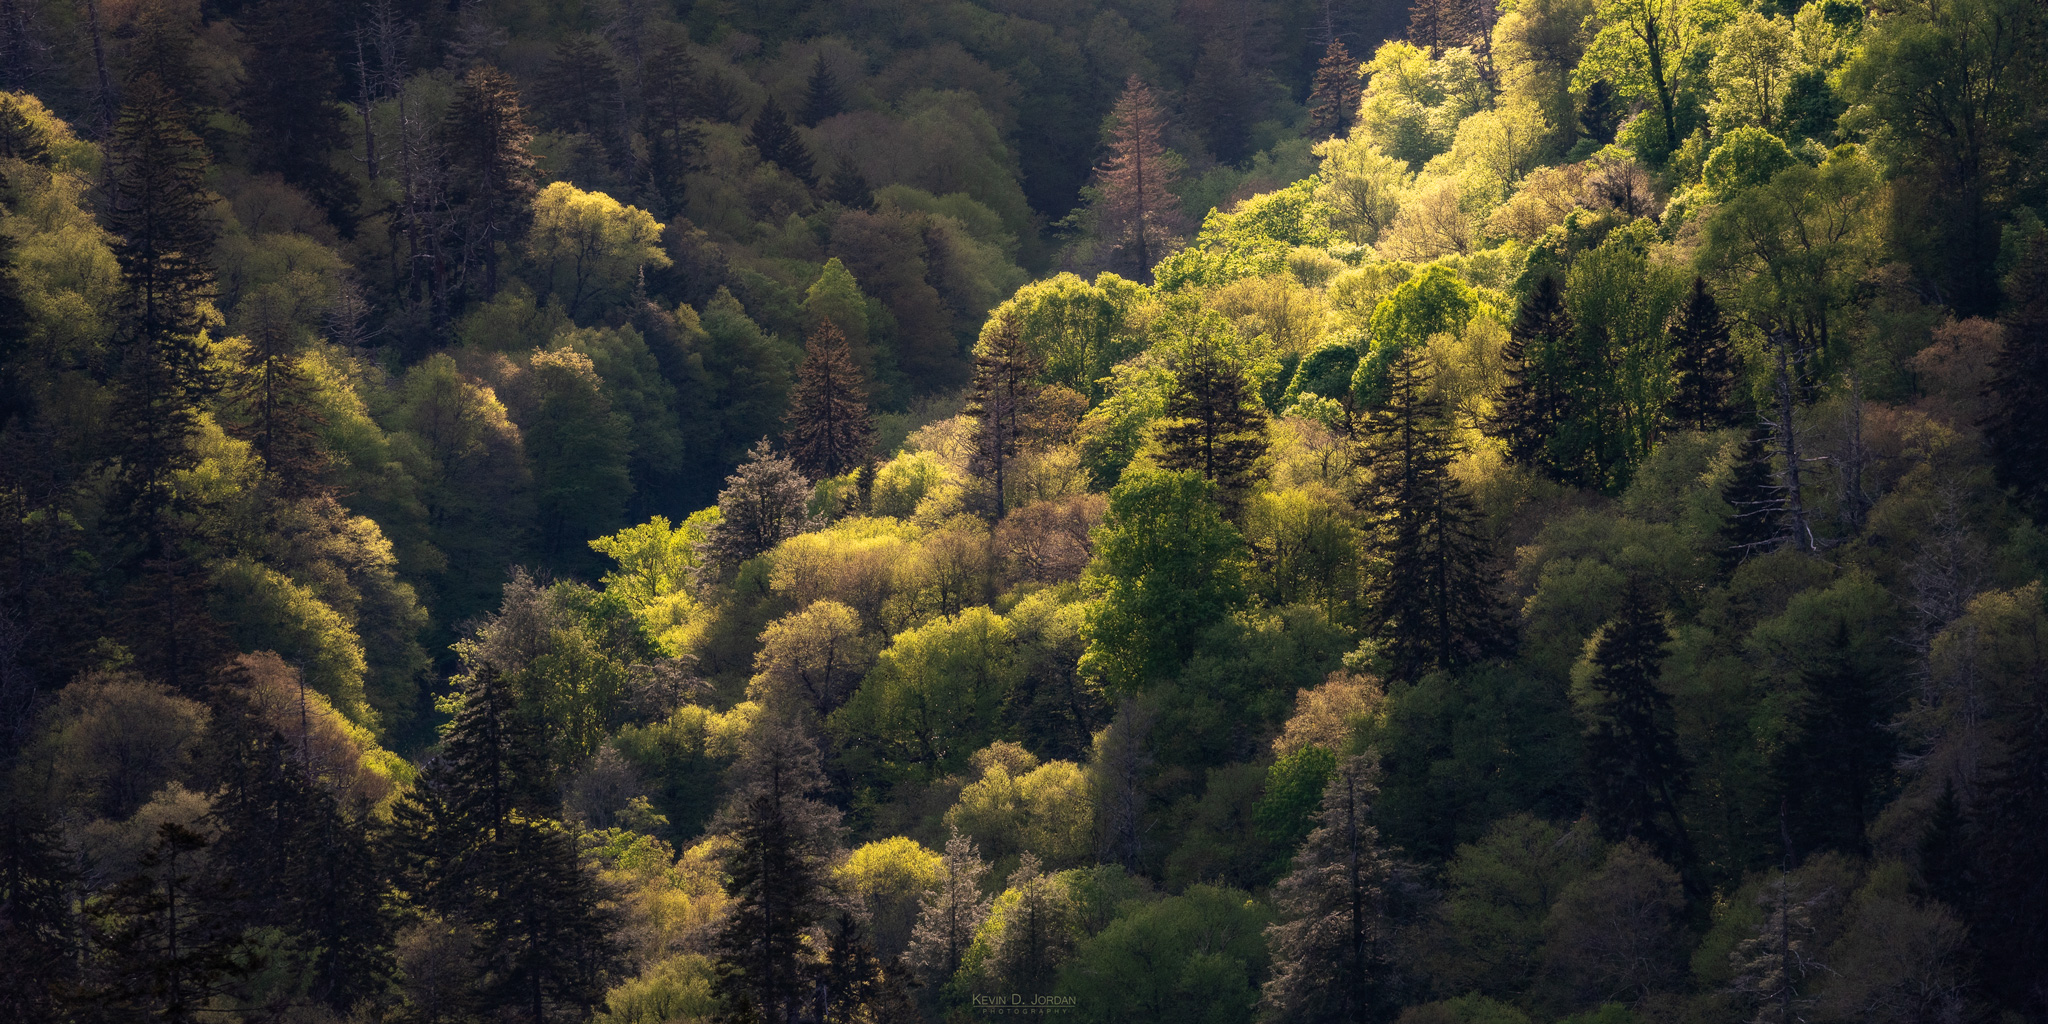 Late day sunlight illuminates the dense forest of Great Smokey Mountains National Park (© Kevin D. Jordan Photography)